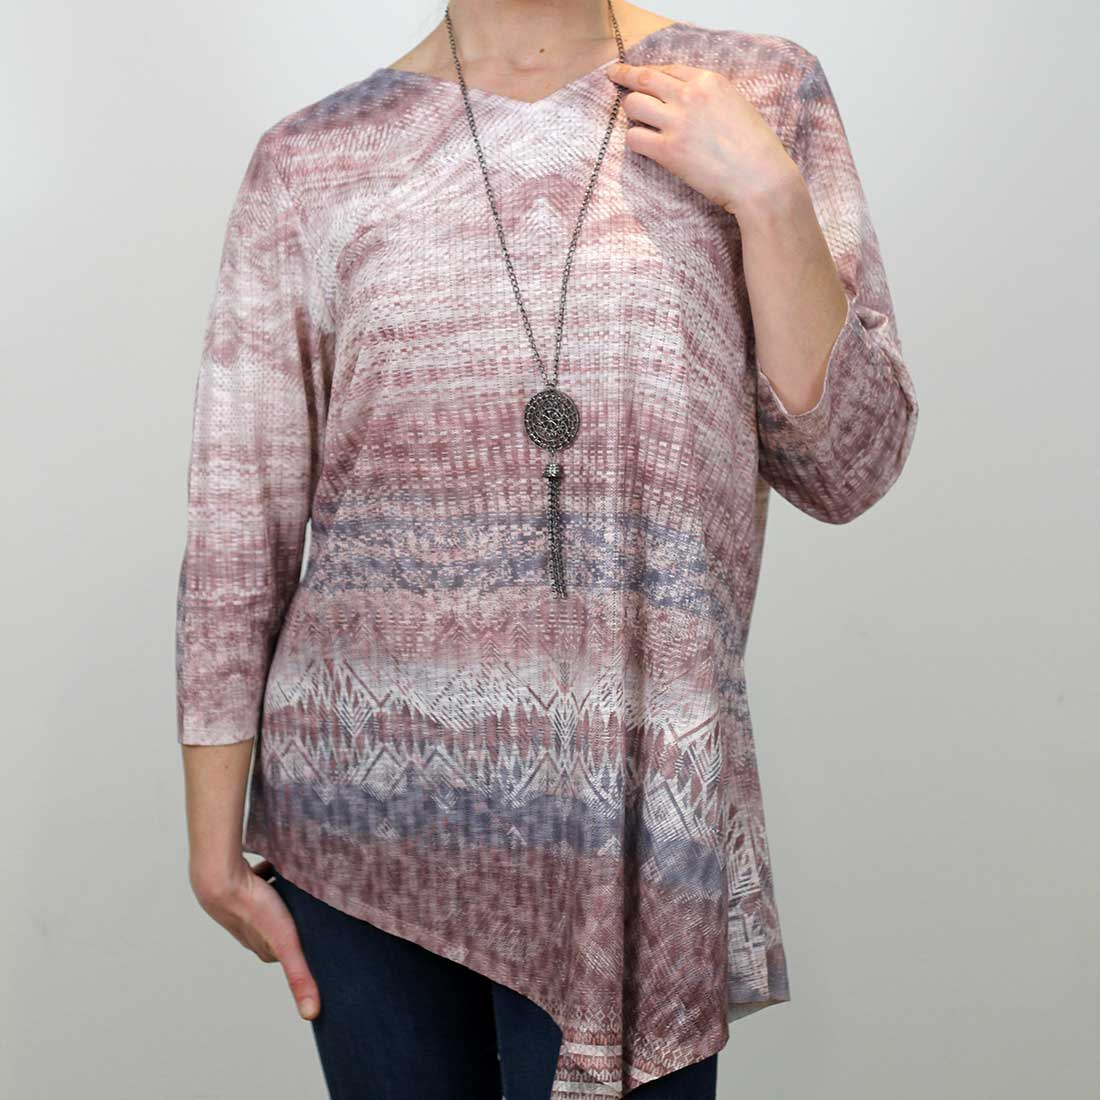 Aztec Print Textured Tunic with Necklace